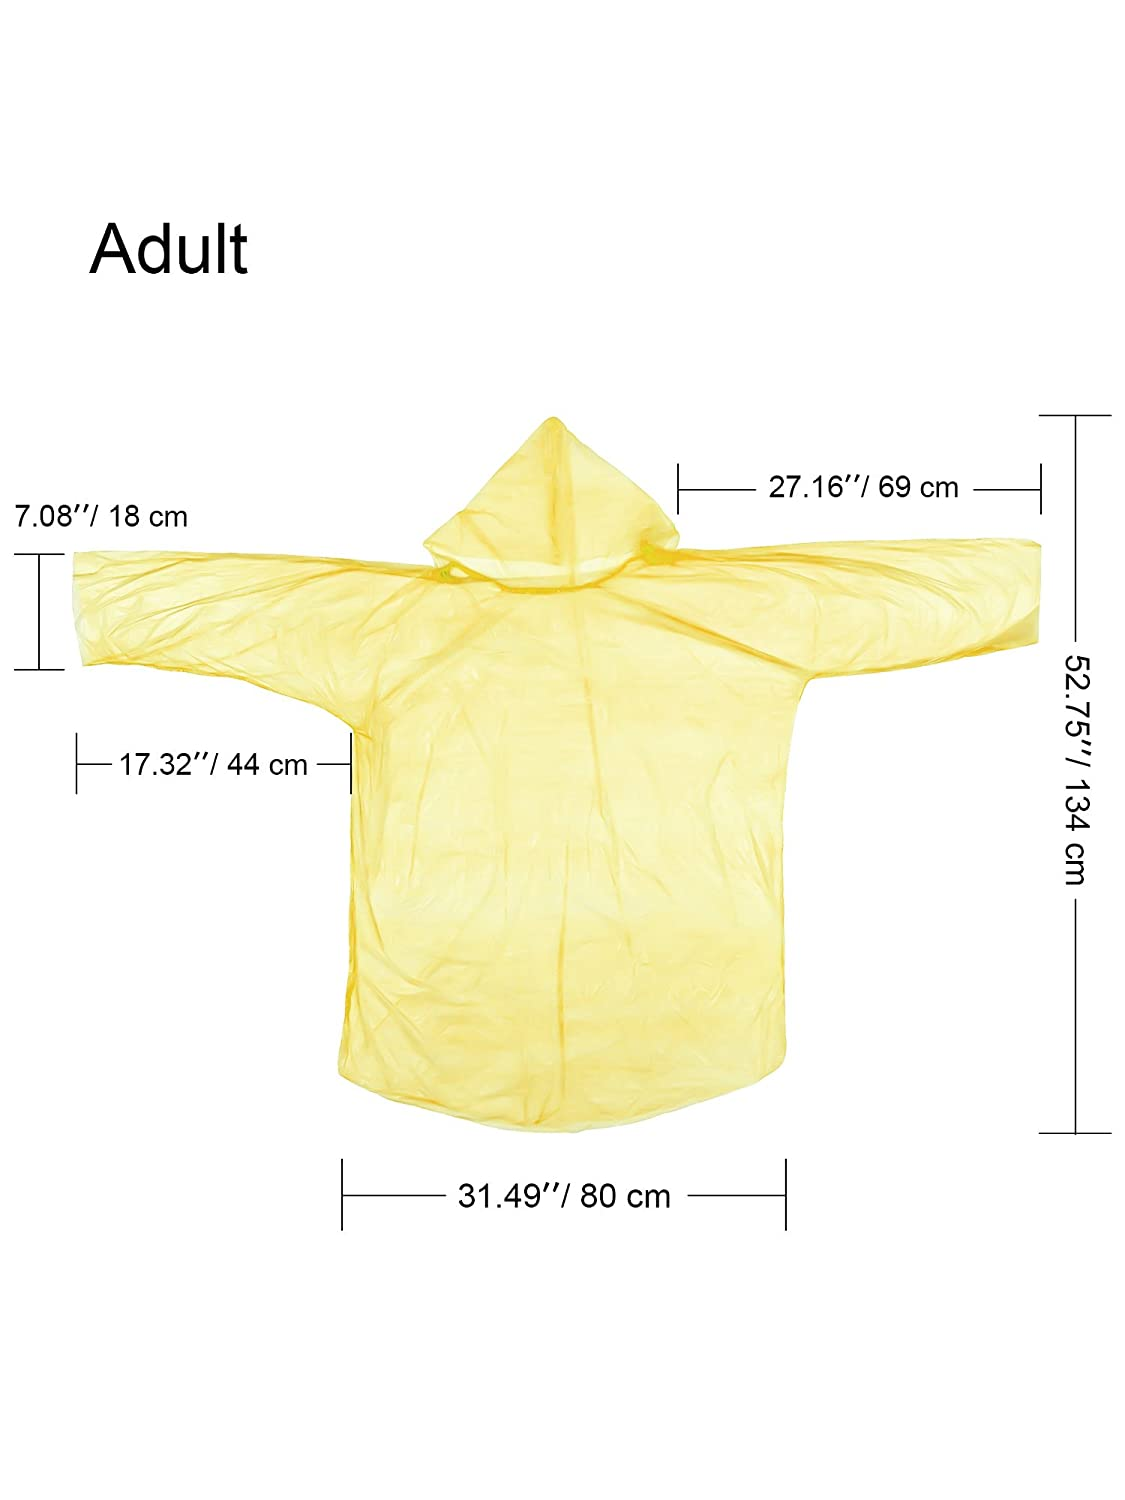 Jovitec 12 Pieces Rain Poncho Disposable Family Pack Poncho Emergency Rain Poncho for Adults Kids Outdoor Activities Multi-Color 6 Pieces for Adults and 6 Pieces for Kids